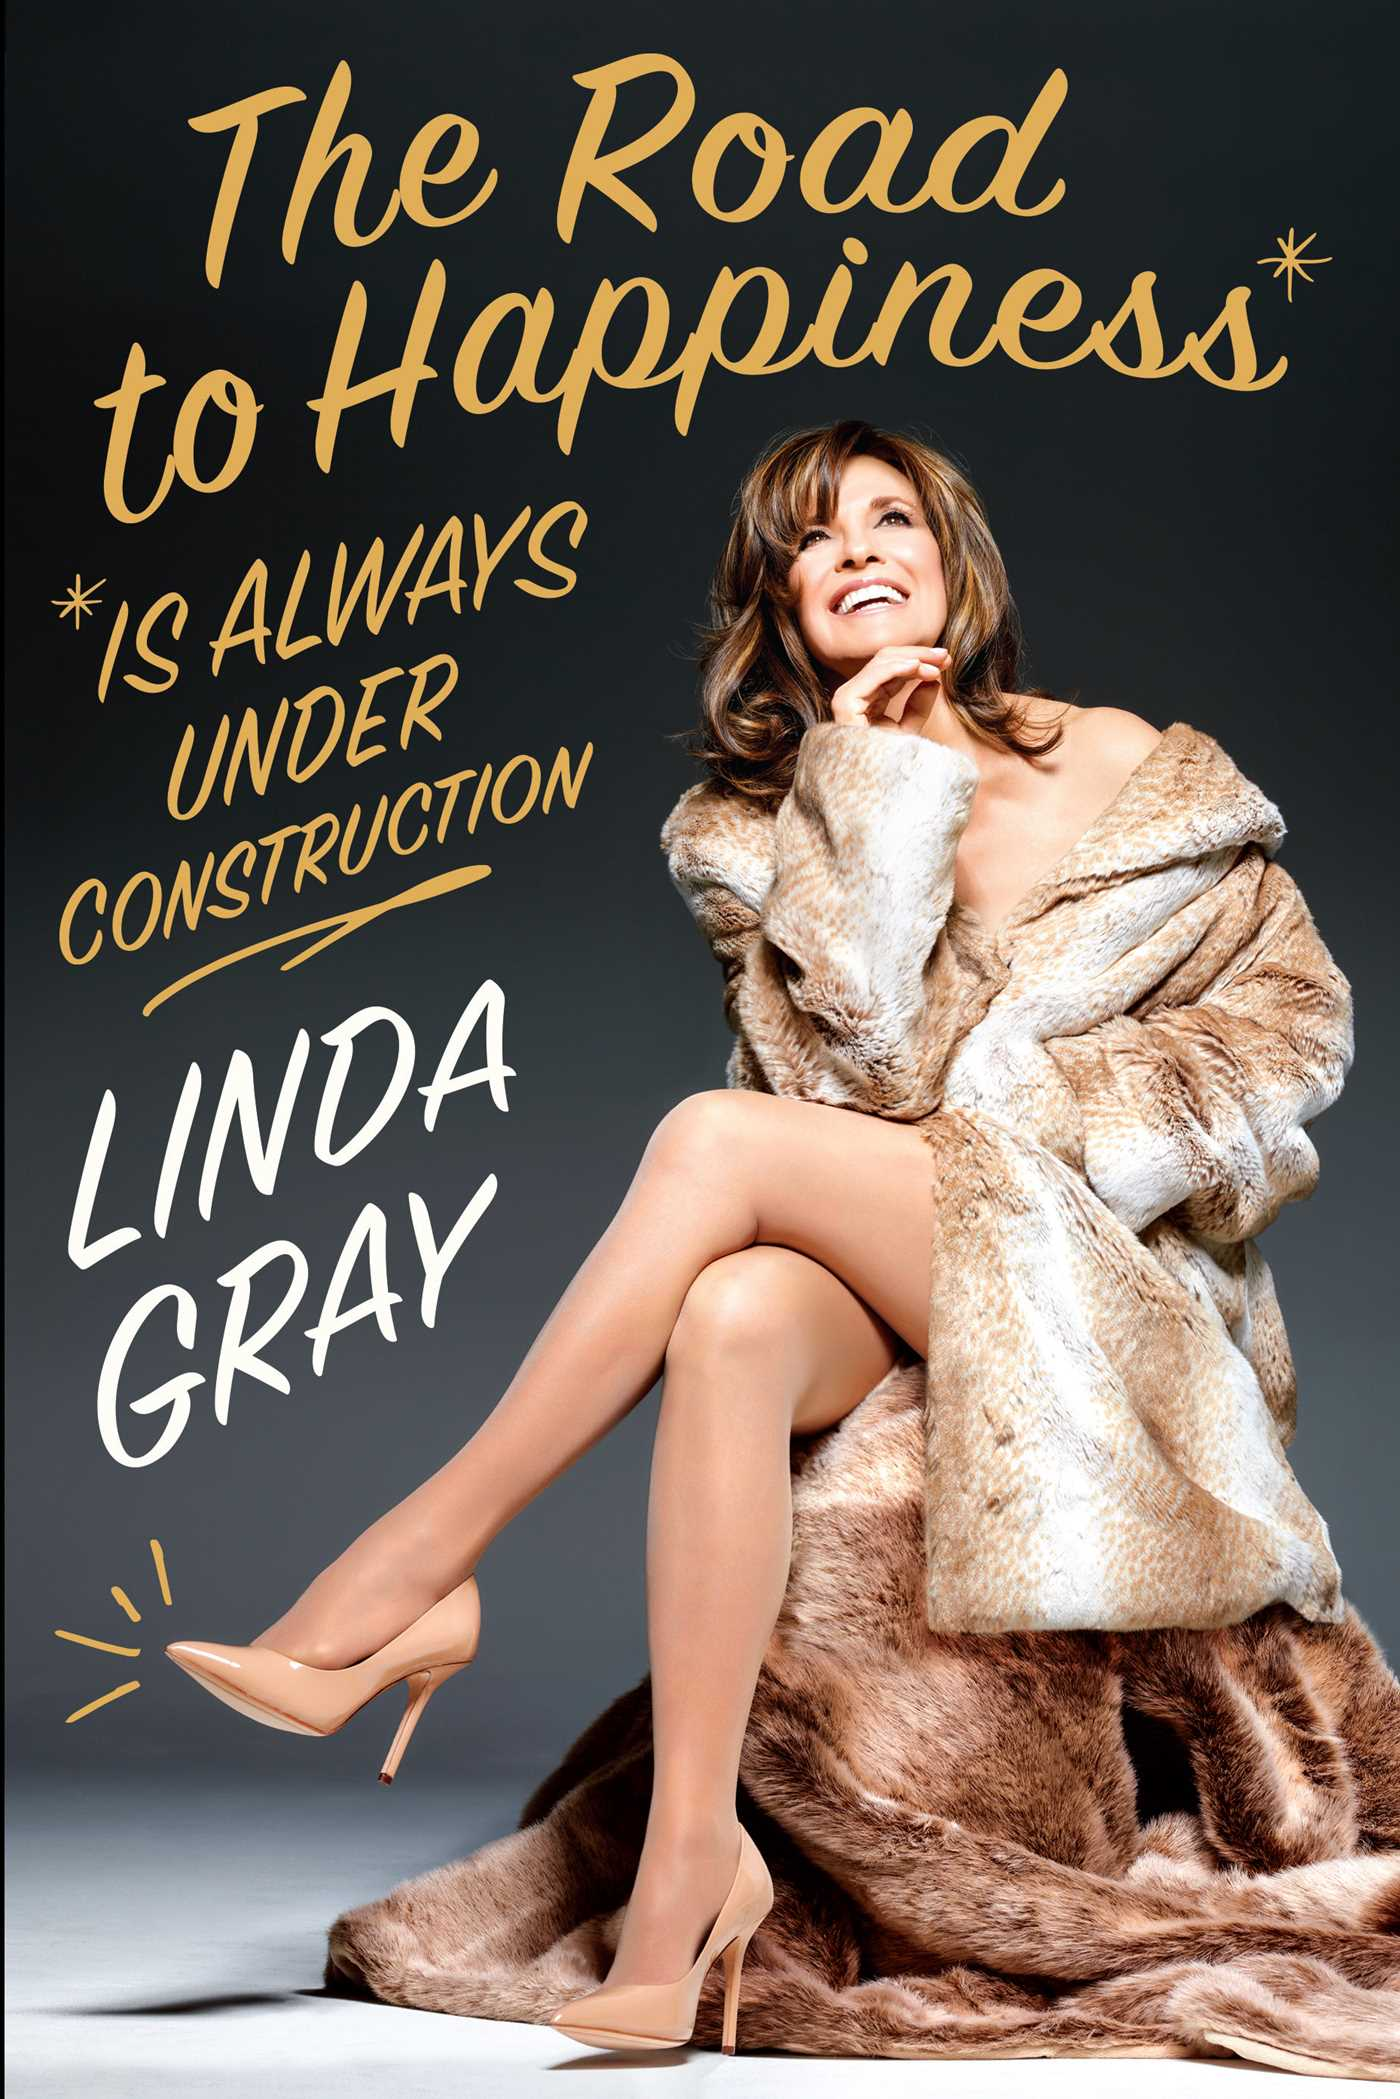 Linda Gray For mobile